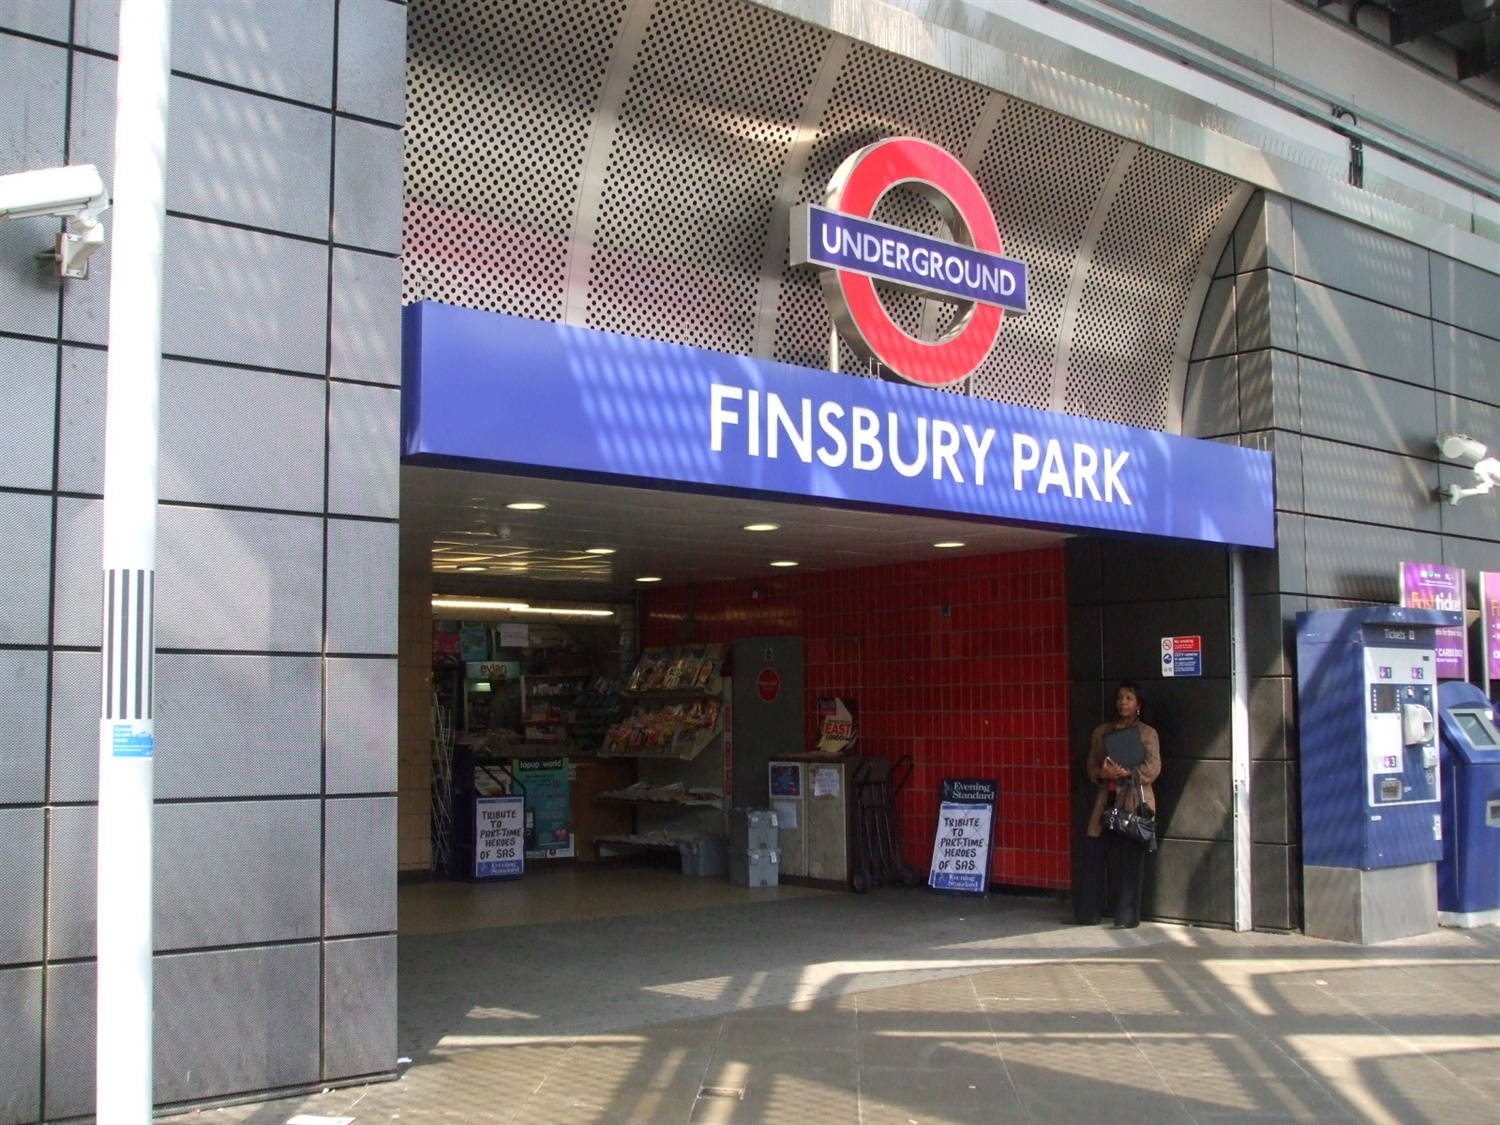 Work to begin on new entrance at Finsbury Park Underground station